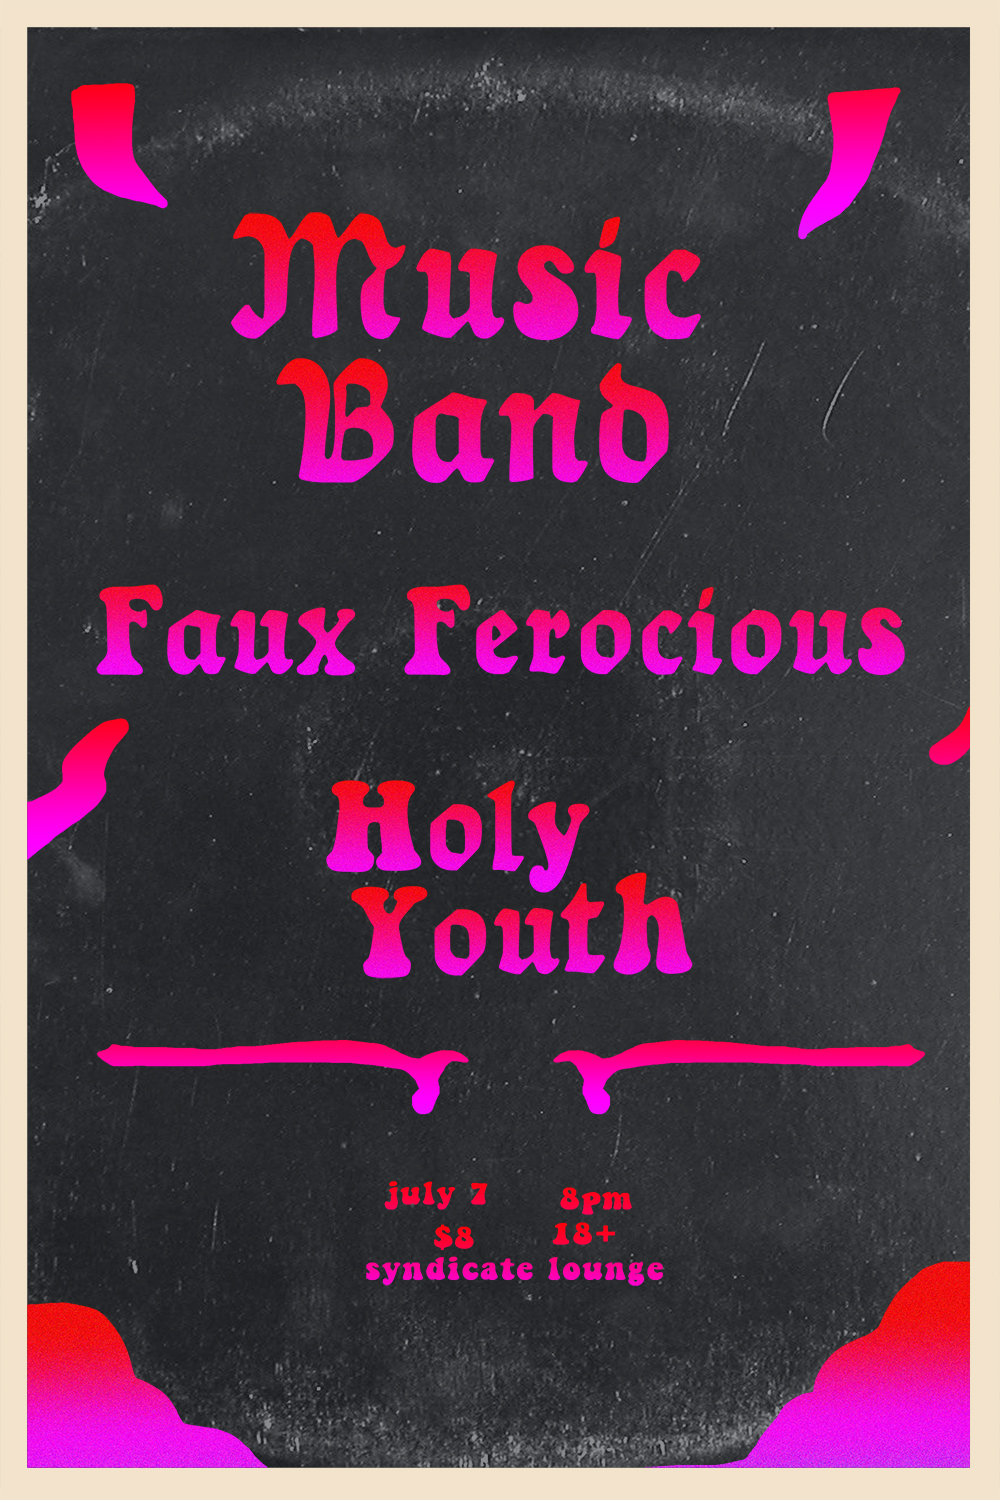 7-7 music band holy youth faux ferocious.jpg